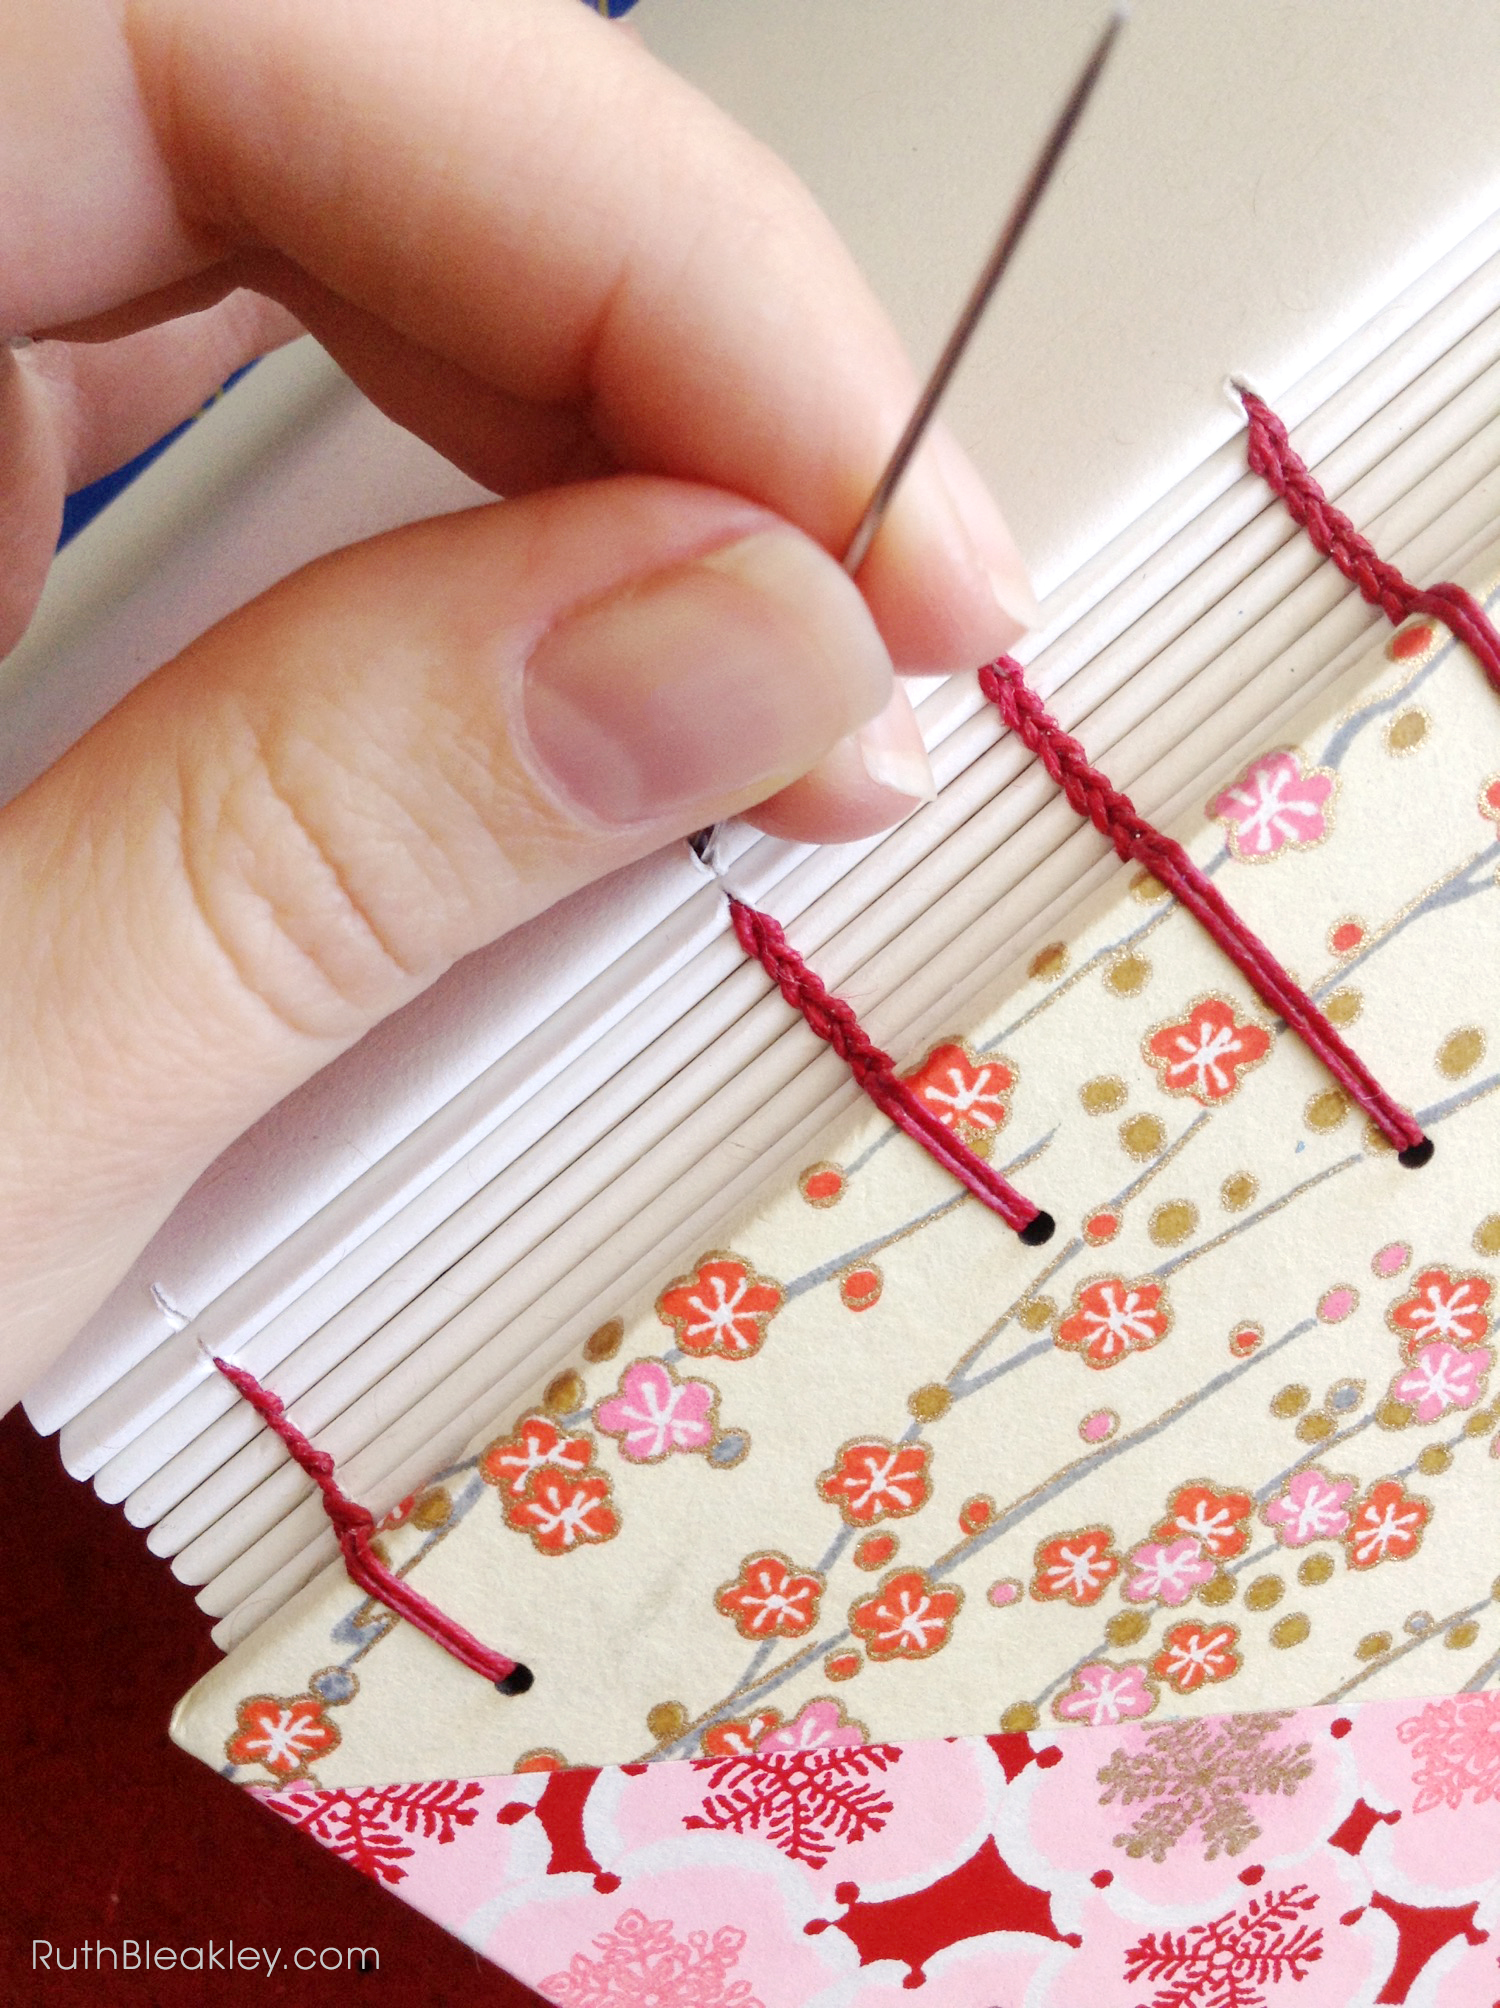 Cherry Blossom Journal handmade by bookbinder Ruth Bleakley - coptic stitch bookbinding